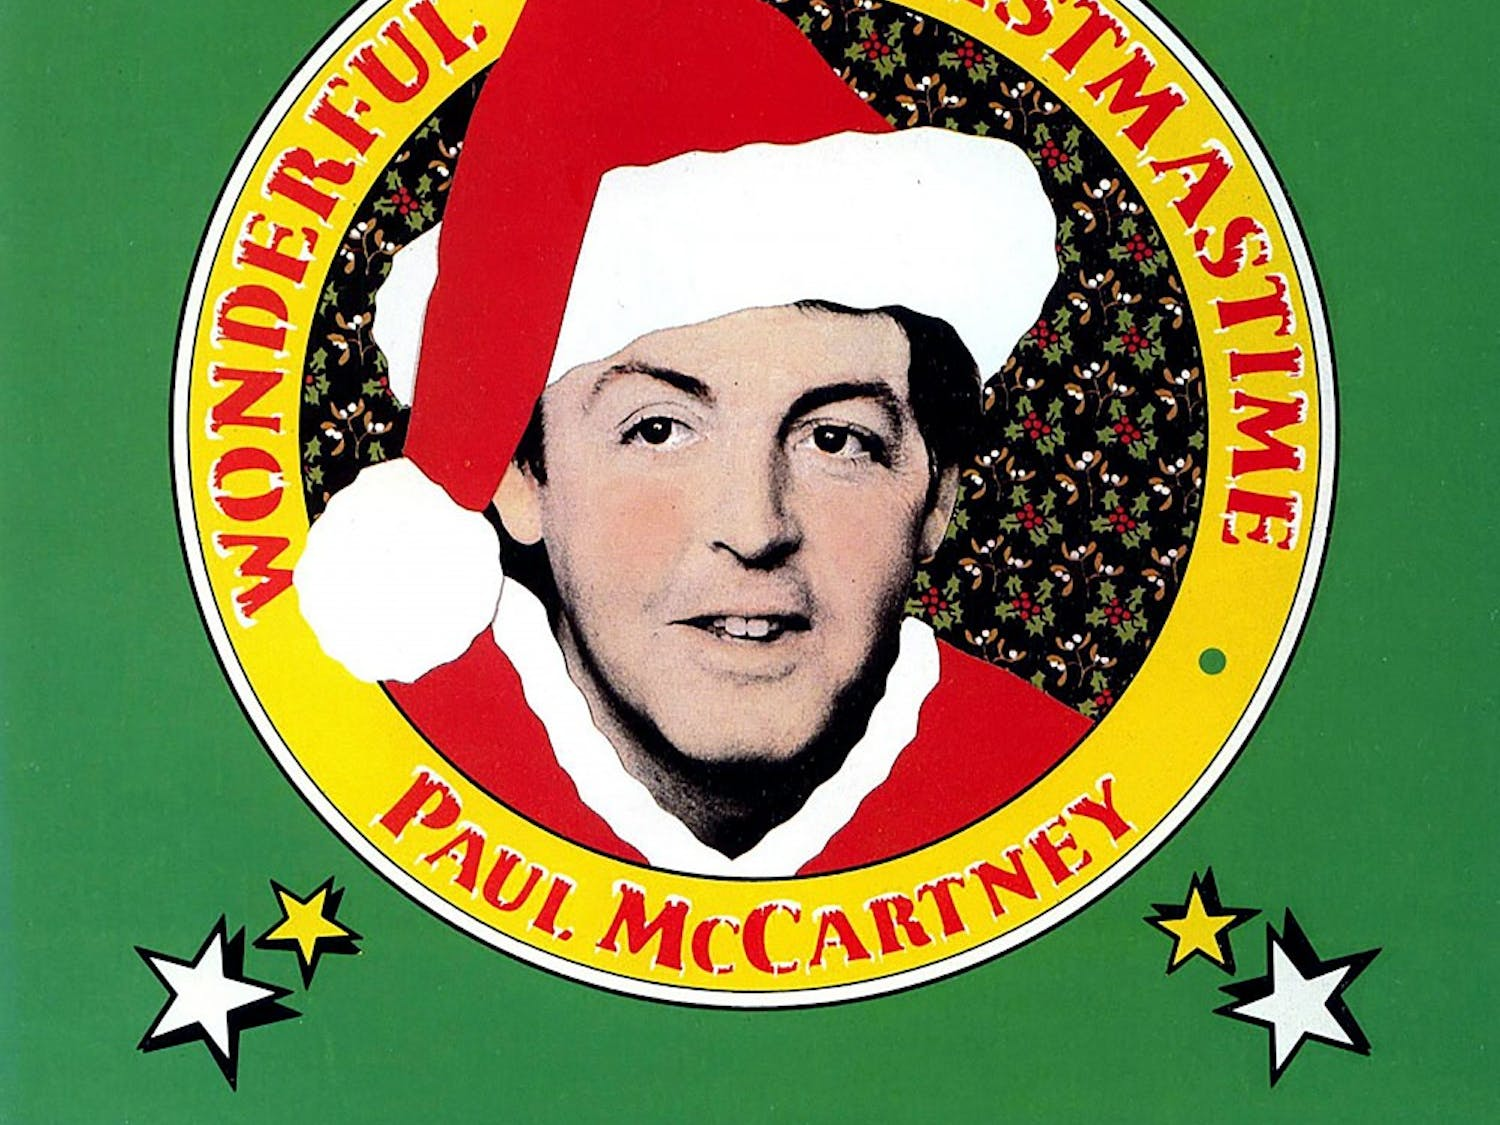 """Paul McCartney's """"Wonderful Christmastime"""" is a must for the holiday season and a highlight of McCartney's solo work. Other holiday tracks may triumph over it, but McCartney's Christmas will never feel over-played."""